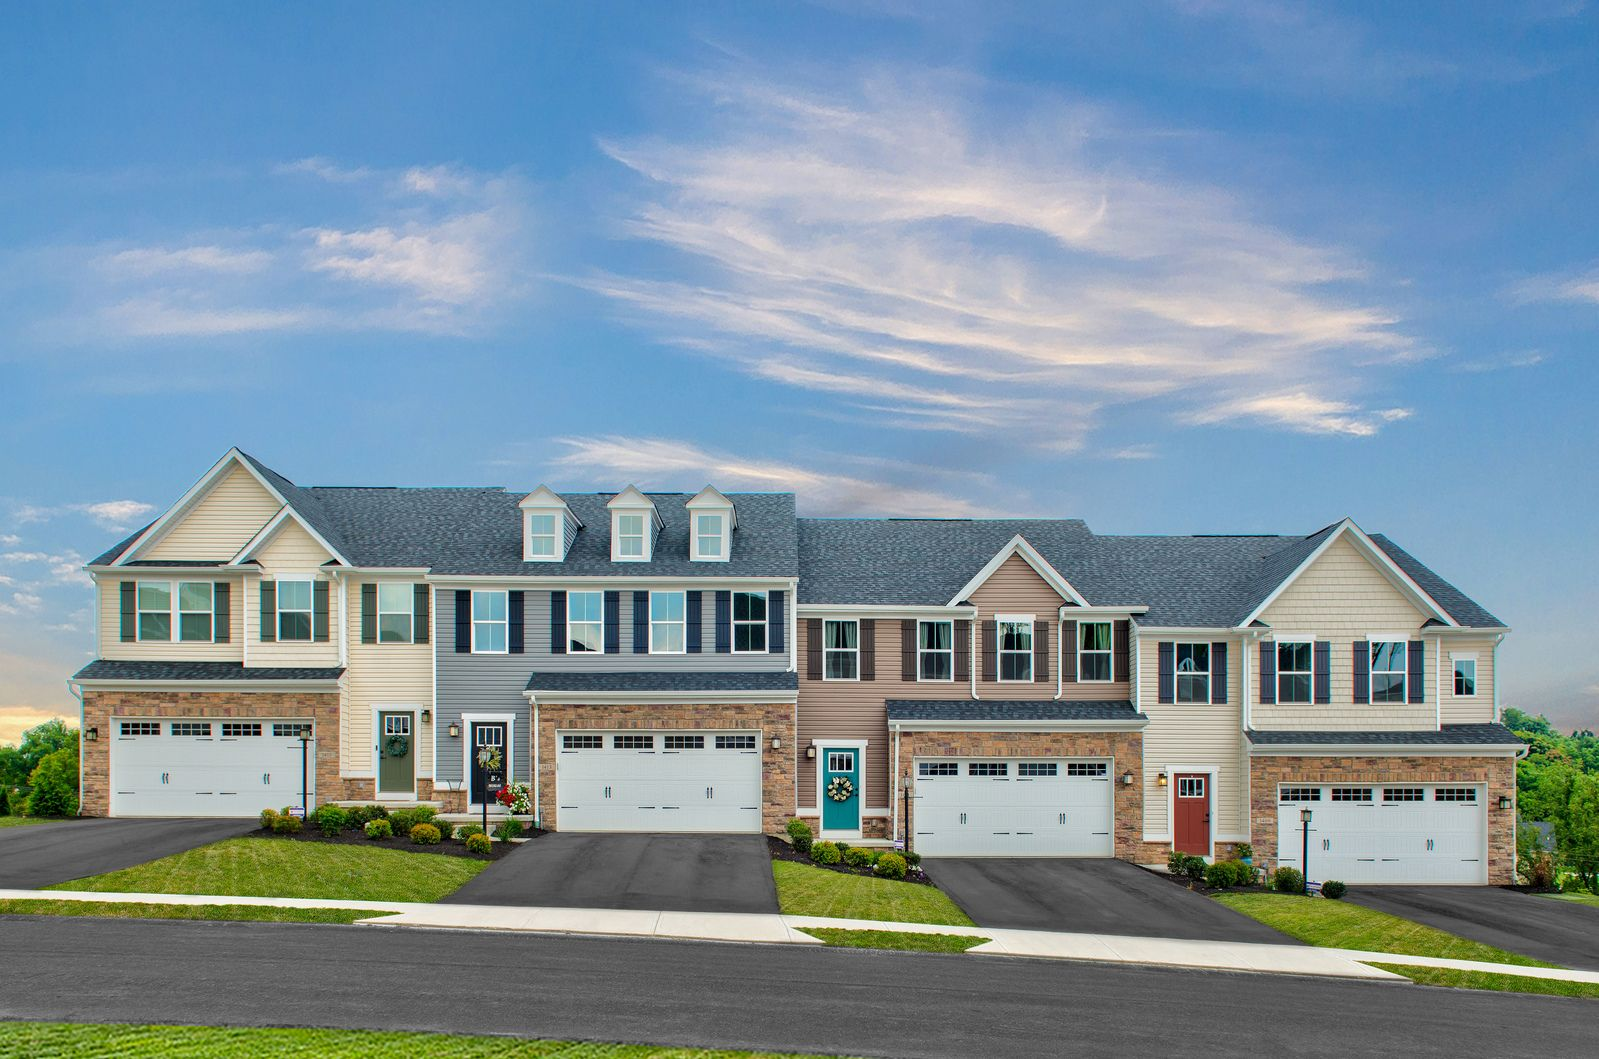 Welcome to McConnell Trails Townhomes:Townhome priced from the upper $200s, located on the Montour Trail with incredible commuter access!Click hereto schedule an appointment.